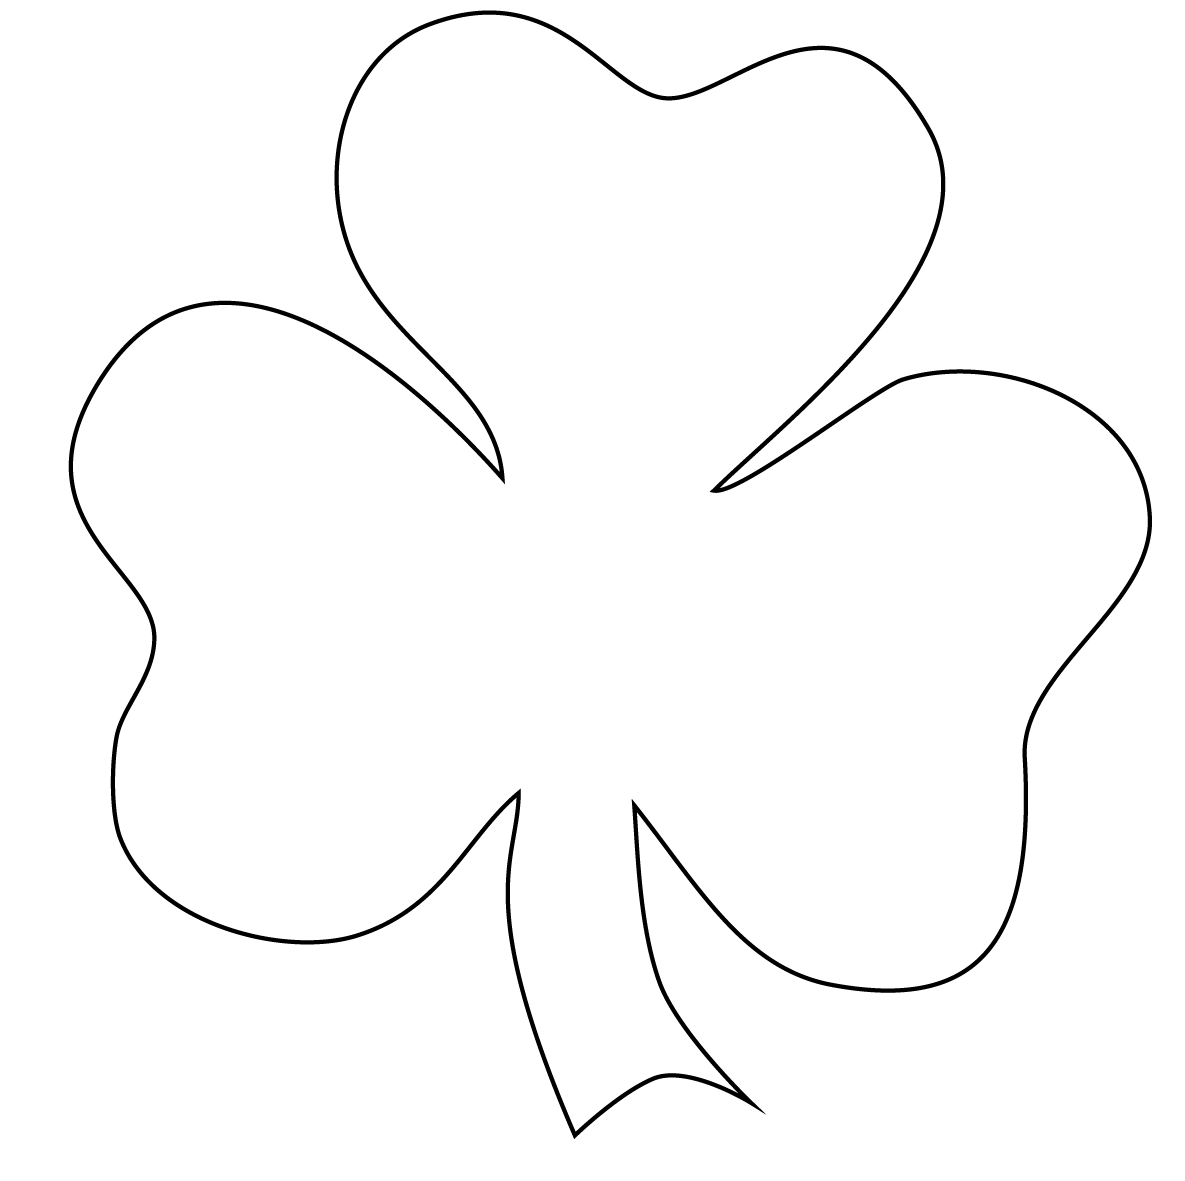 Free Shamrock Outline Download Free Clip Art Free Clip Art On Clipart Library